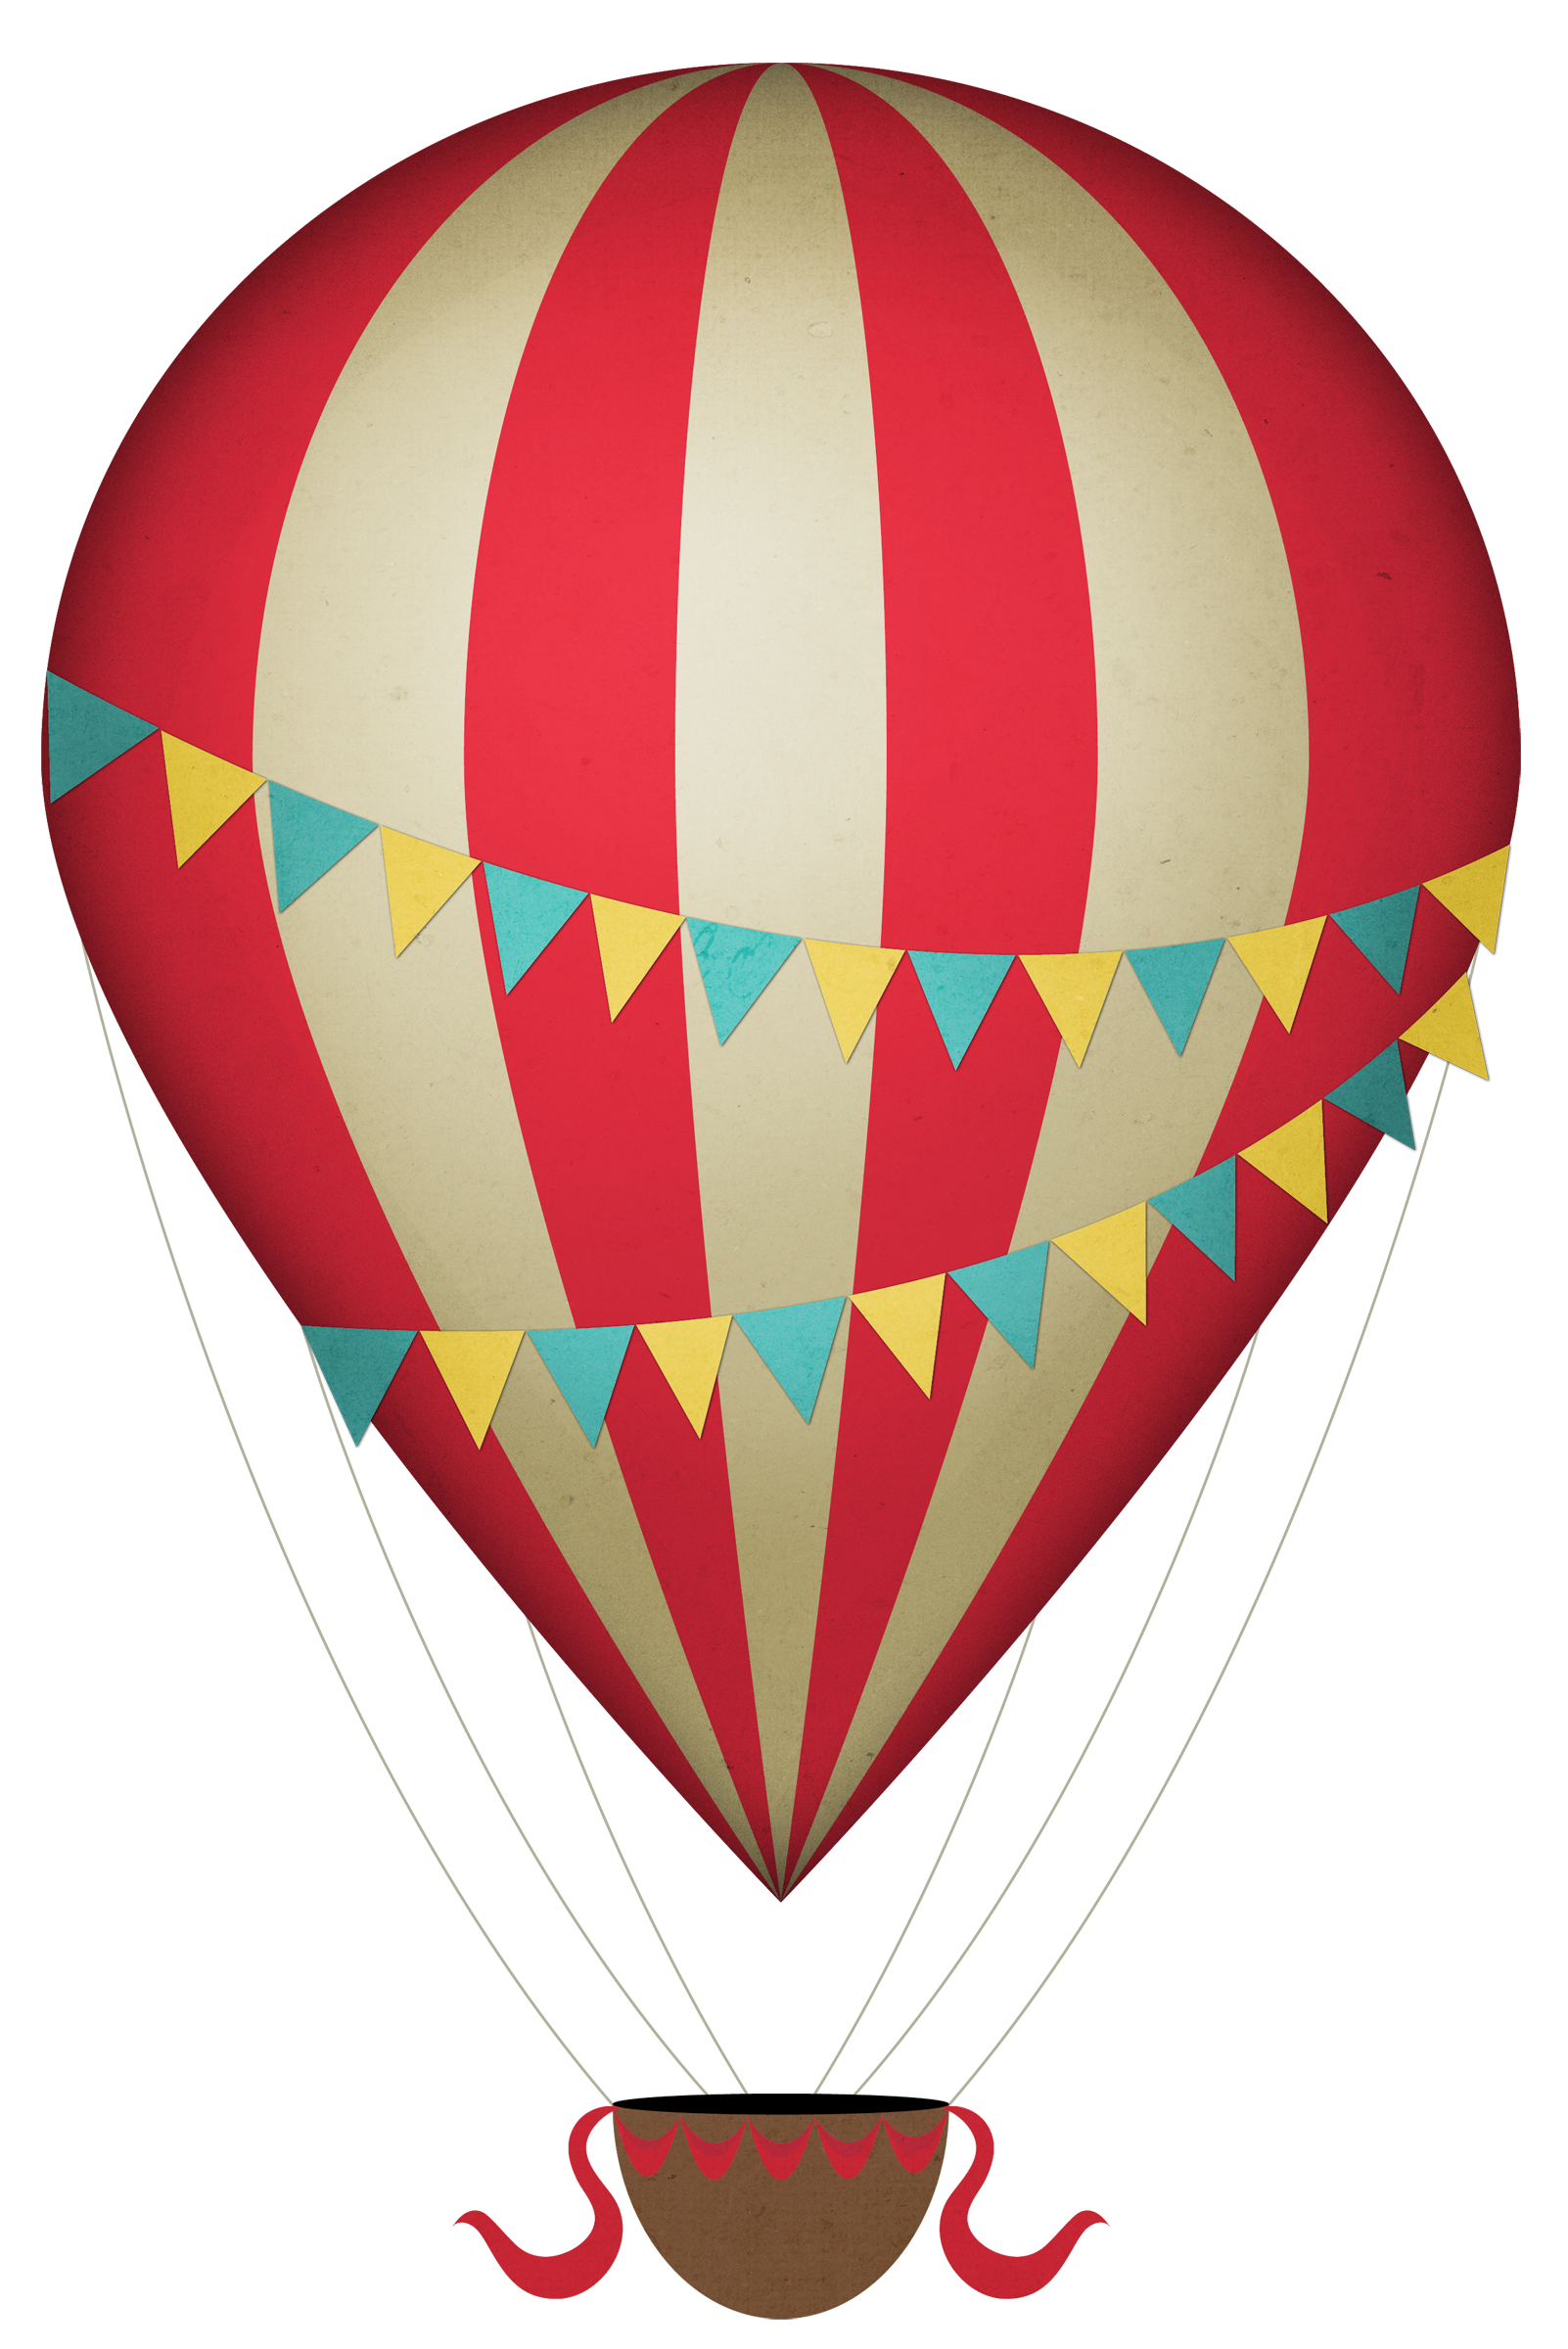 Vintage Hot Air Balloon Clipart | Clipart Panda - Free ...